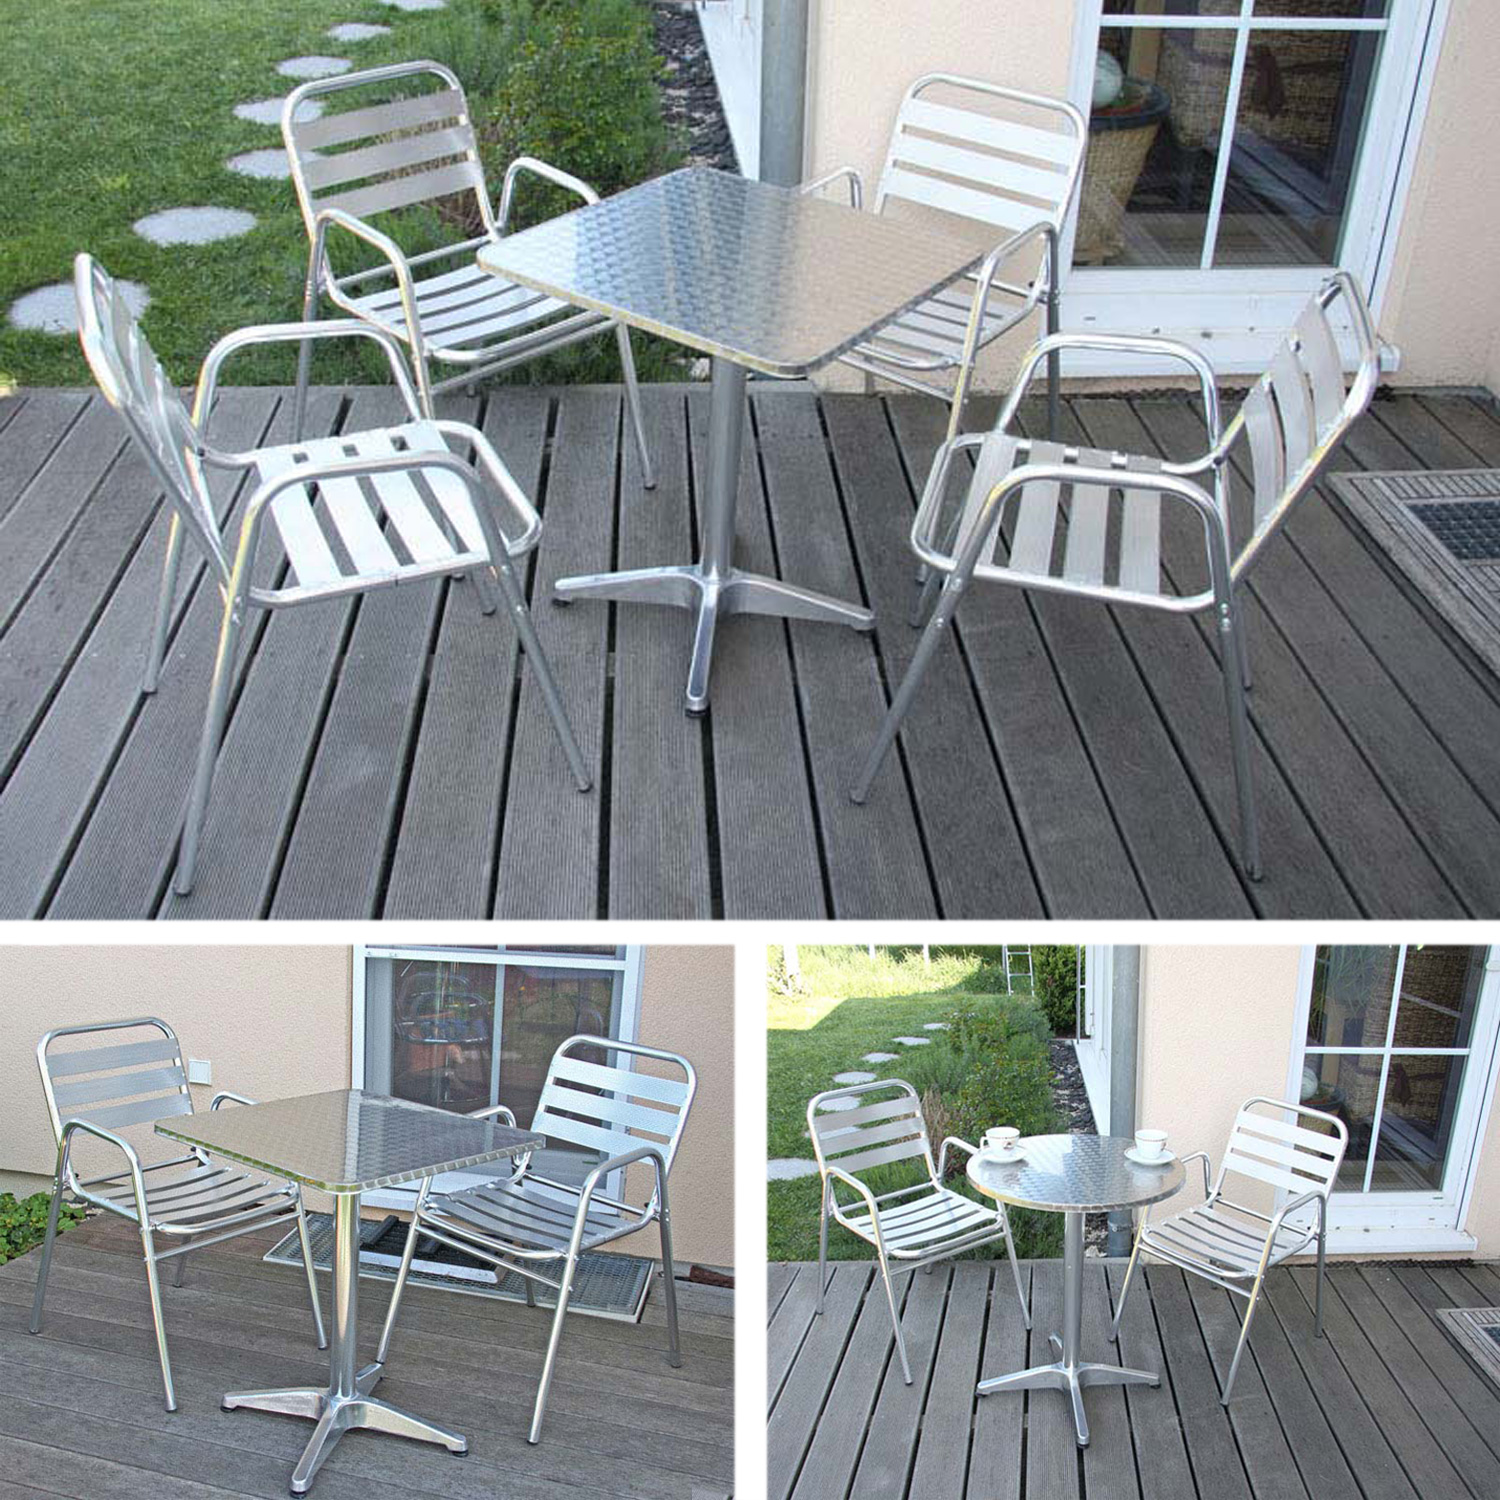 bistro garnitur garten sitzgruppe sitzgruppe aluminium stapelbar ebay. Black Bedroom Furniture Sets. Home Design Ideas